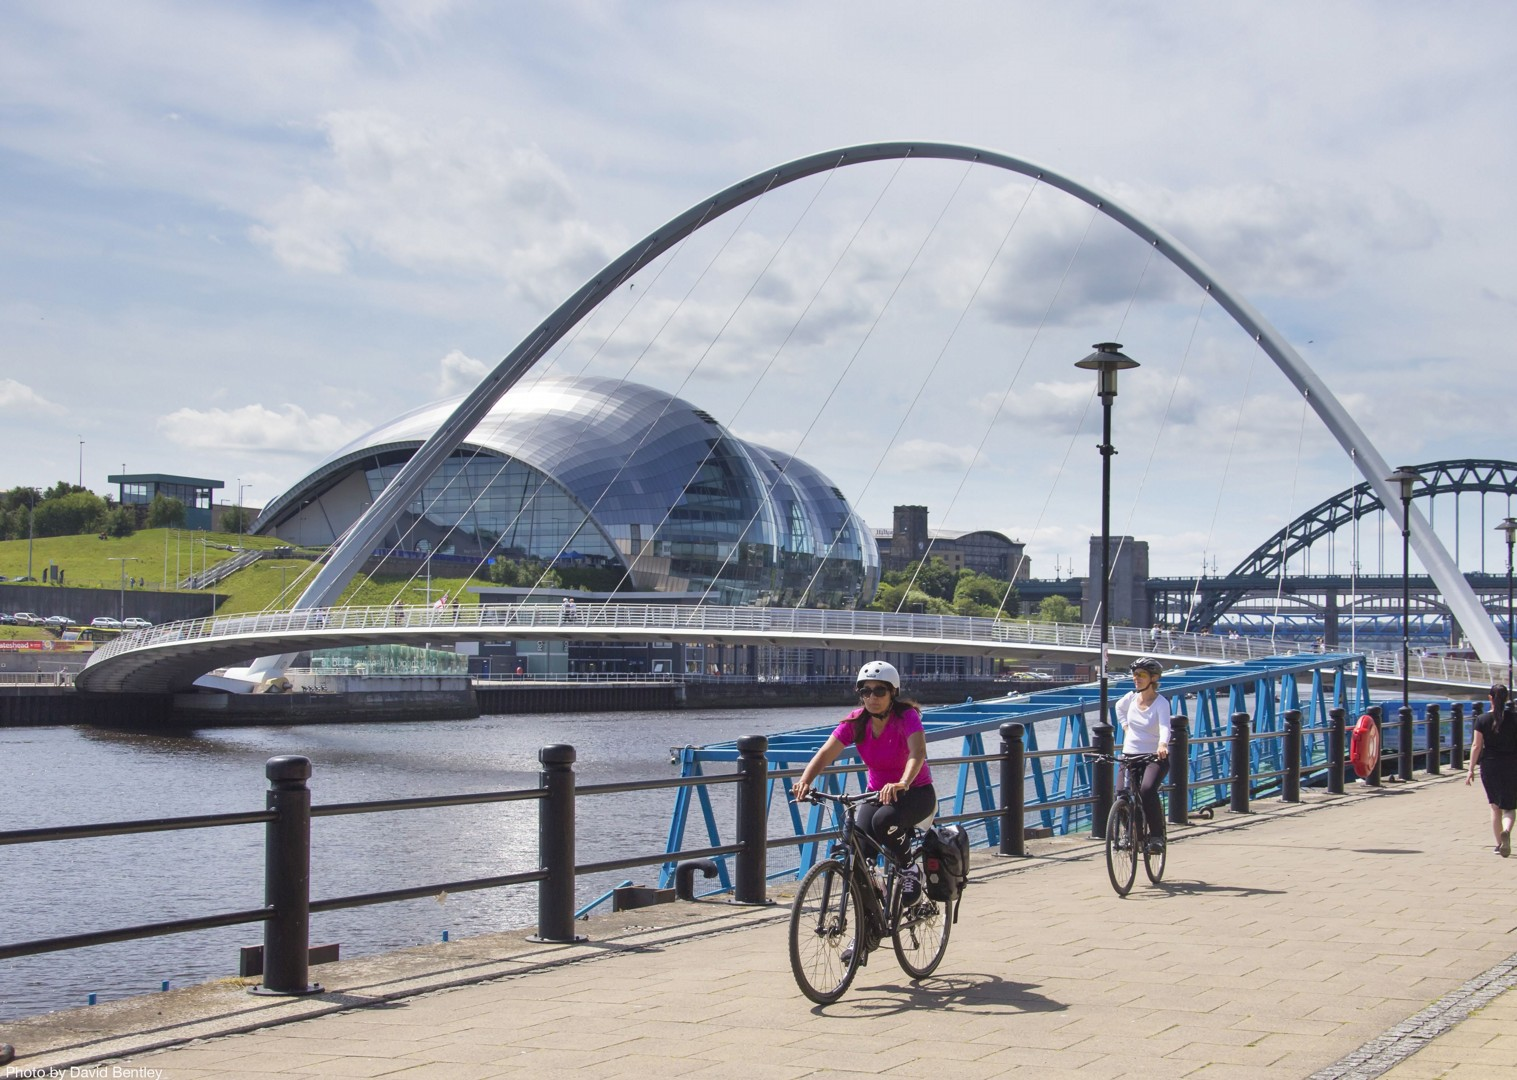 Self-Guided-Leisure-Cycling-Holiday-Hadrians-Cycleway-UK-Newcastle.jpg - UK - Hadrian's Cycleway - 2 Days Cycling - Self-Guided Leisure Cycling Holiday - Leisure Cycling